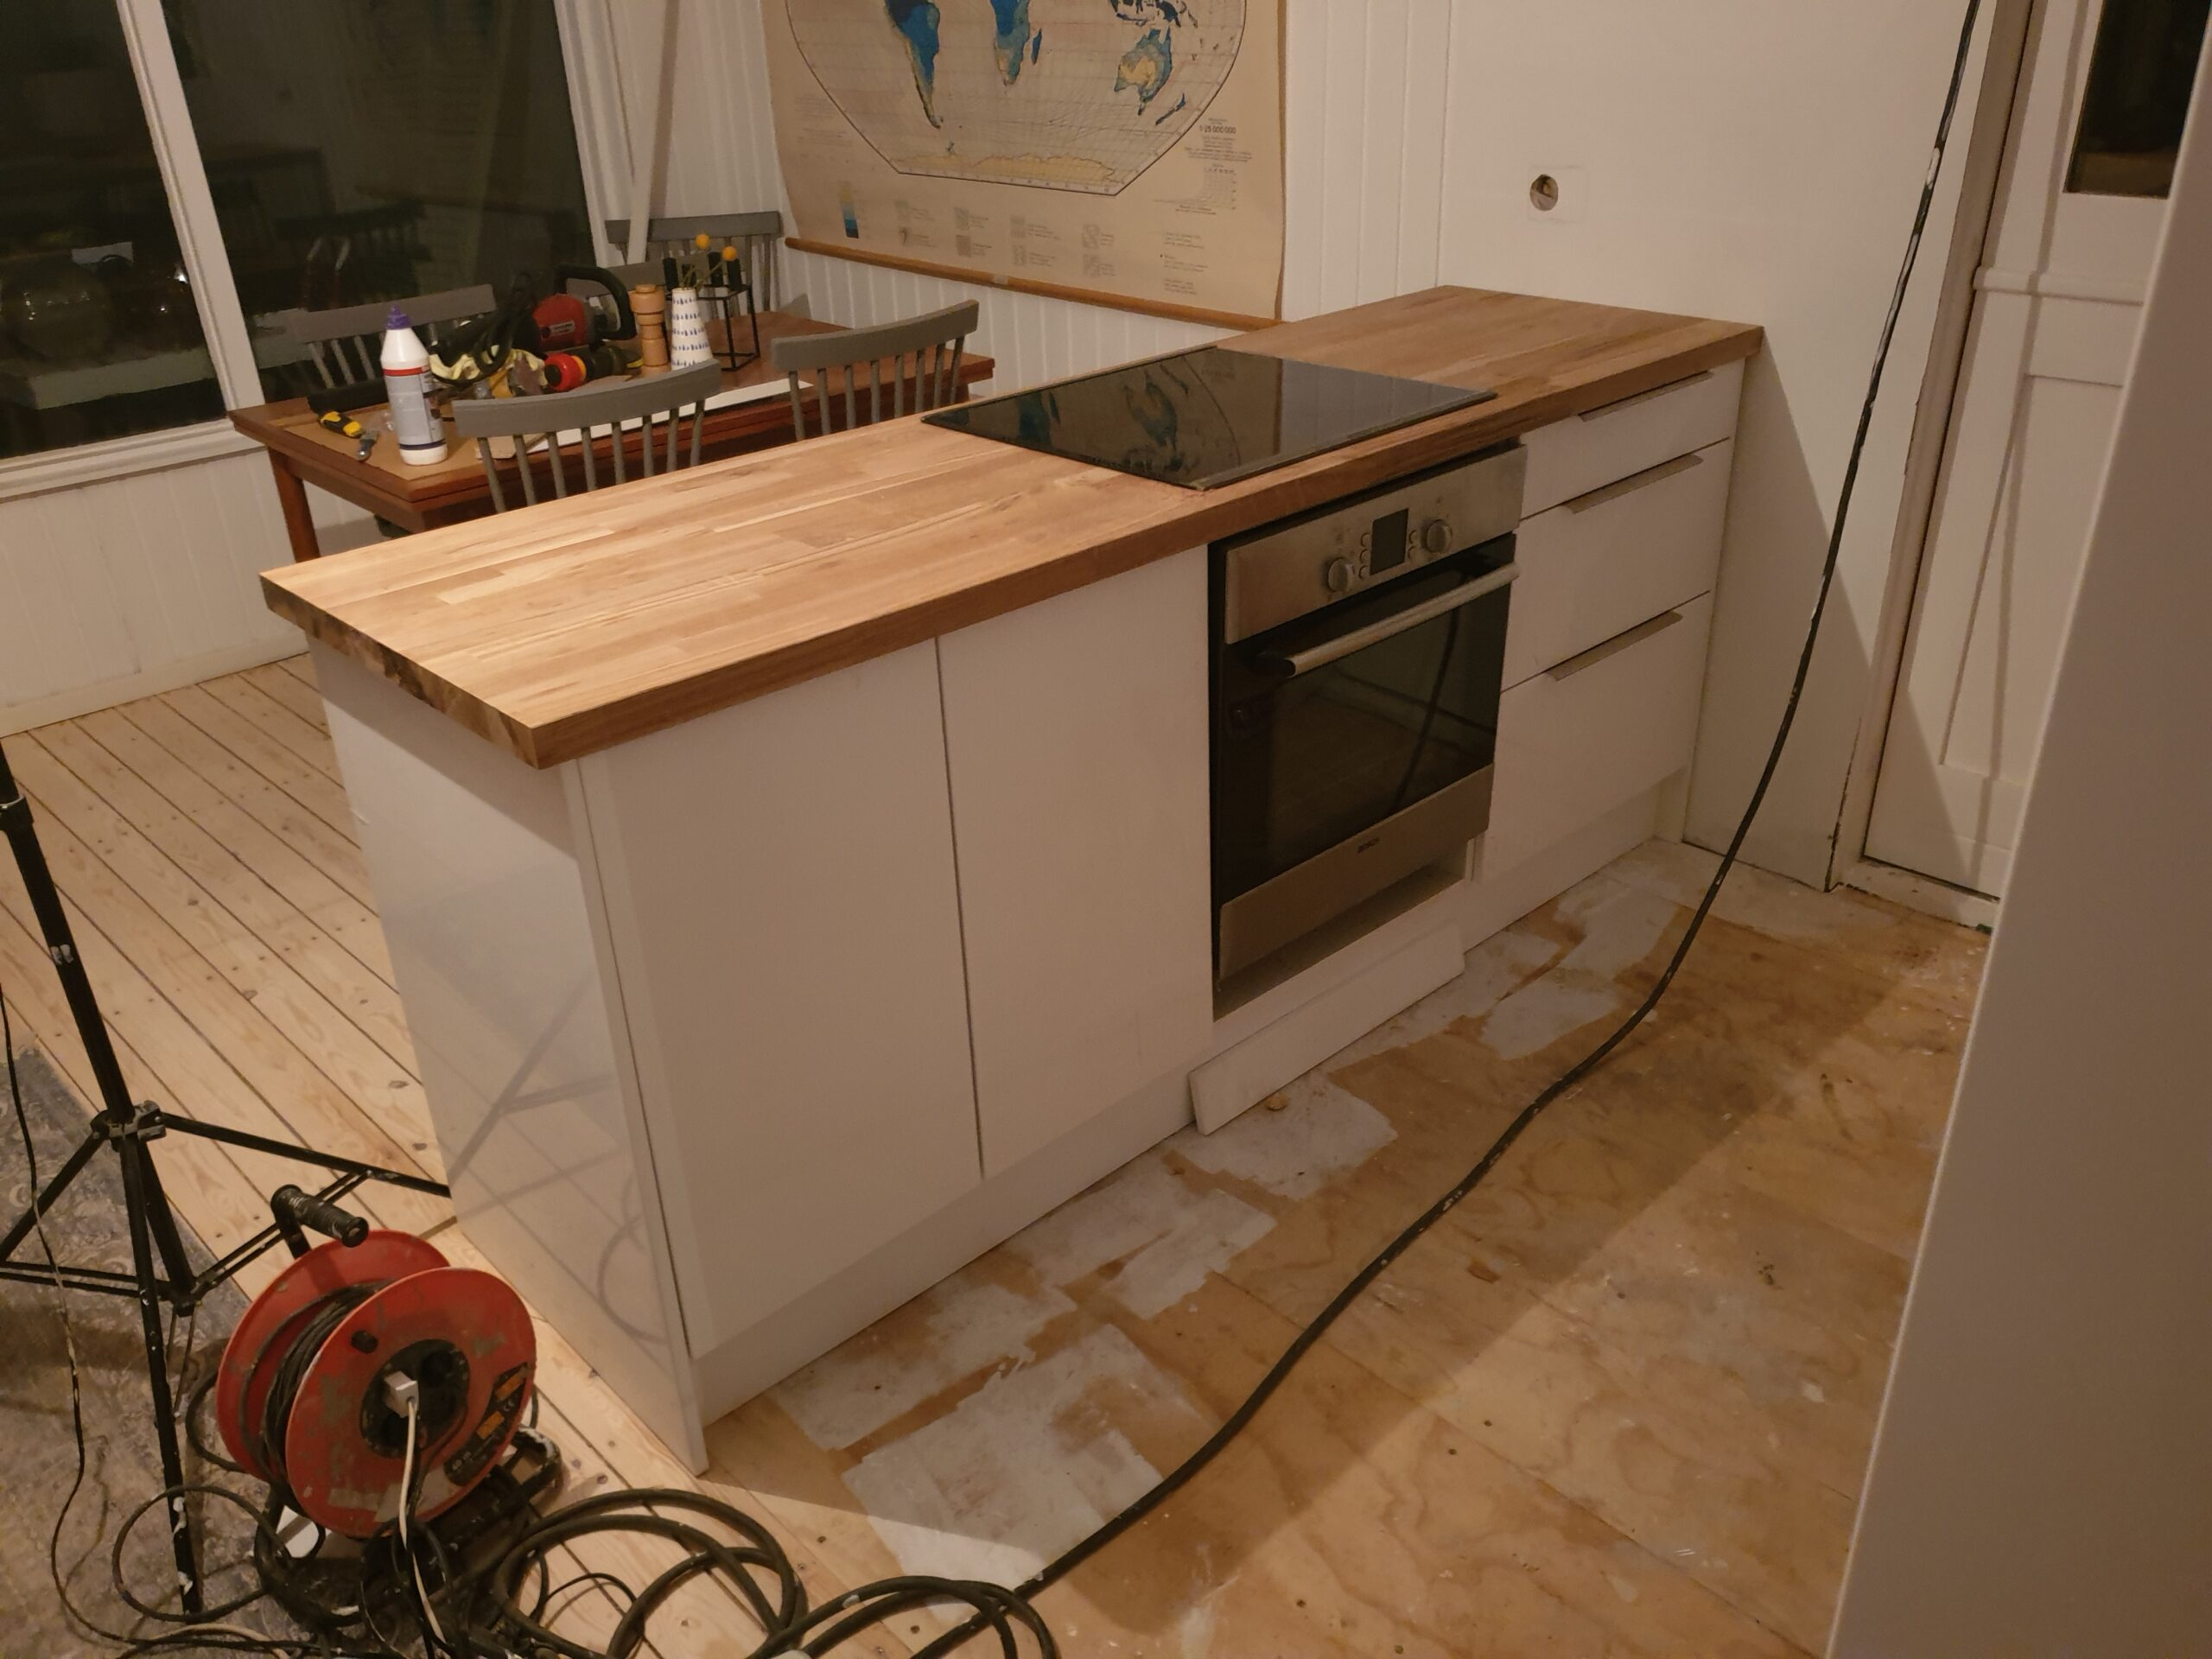 Picture of: Kokken Renovering Trin For Trin Life Of Lars